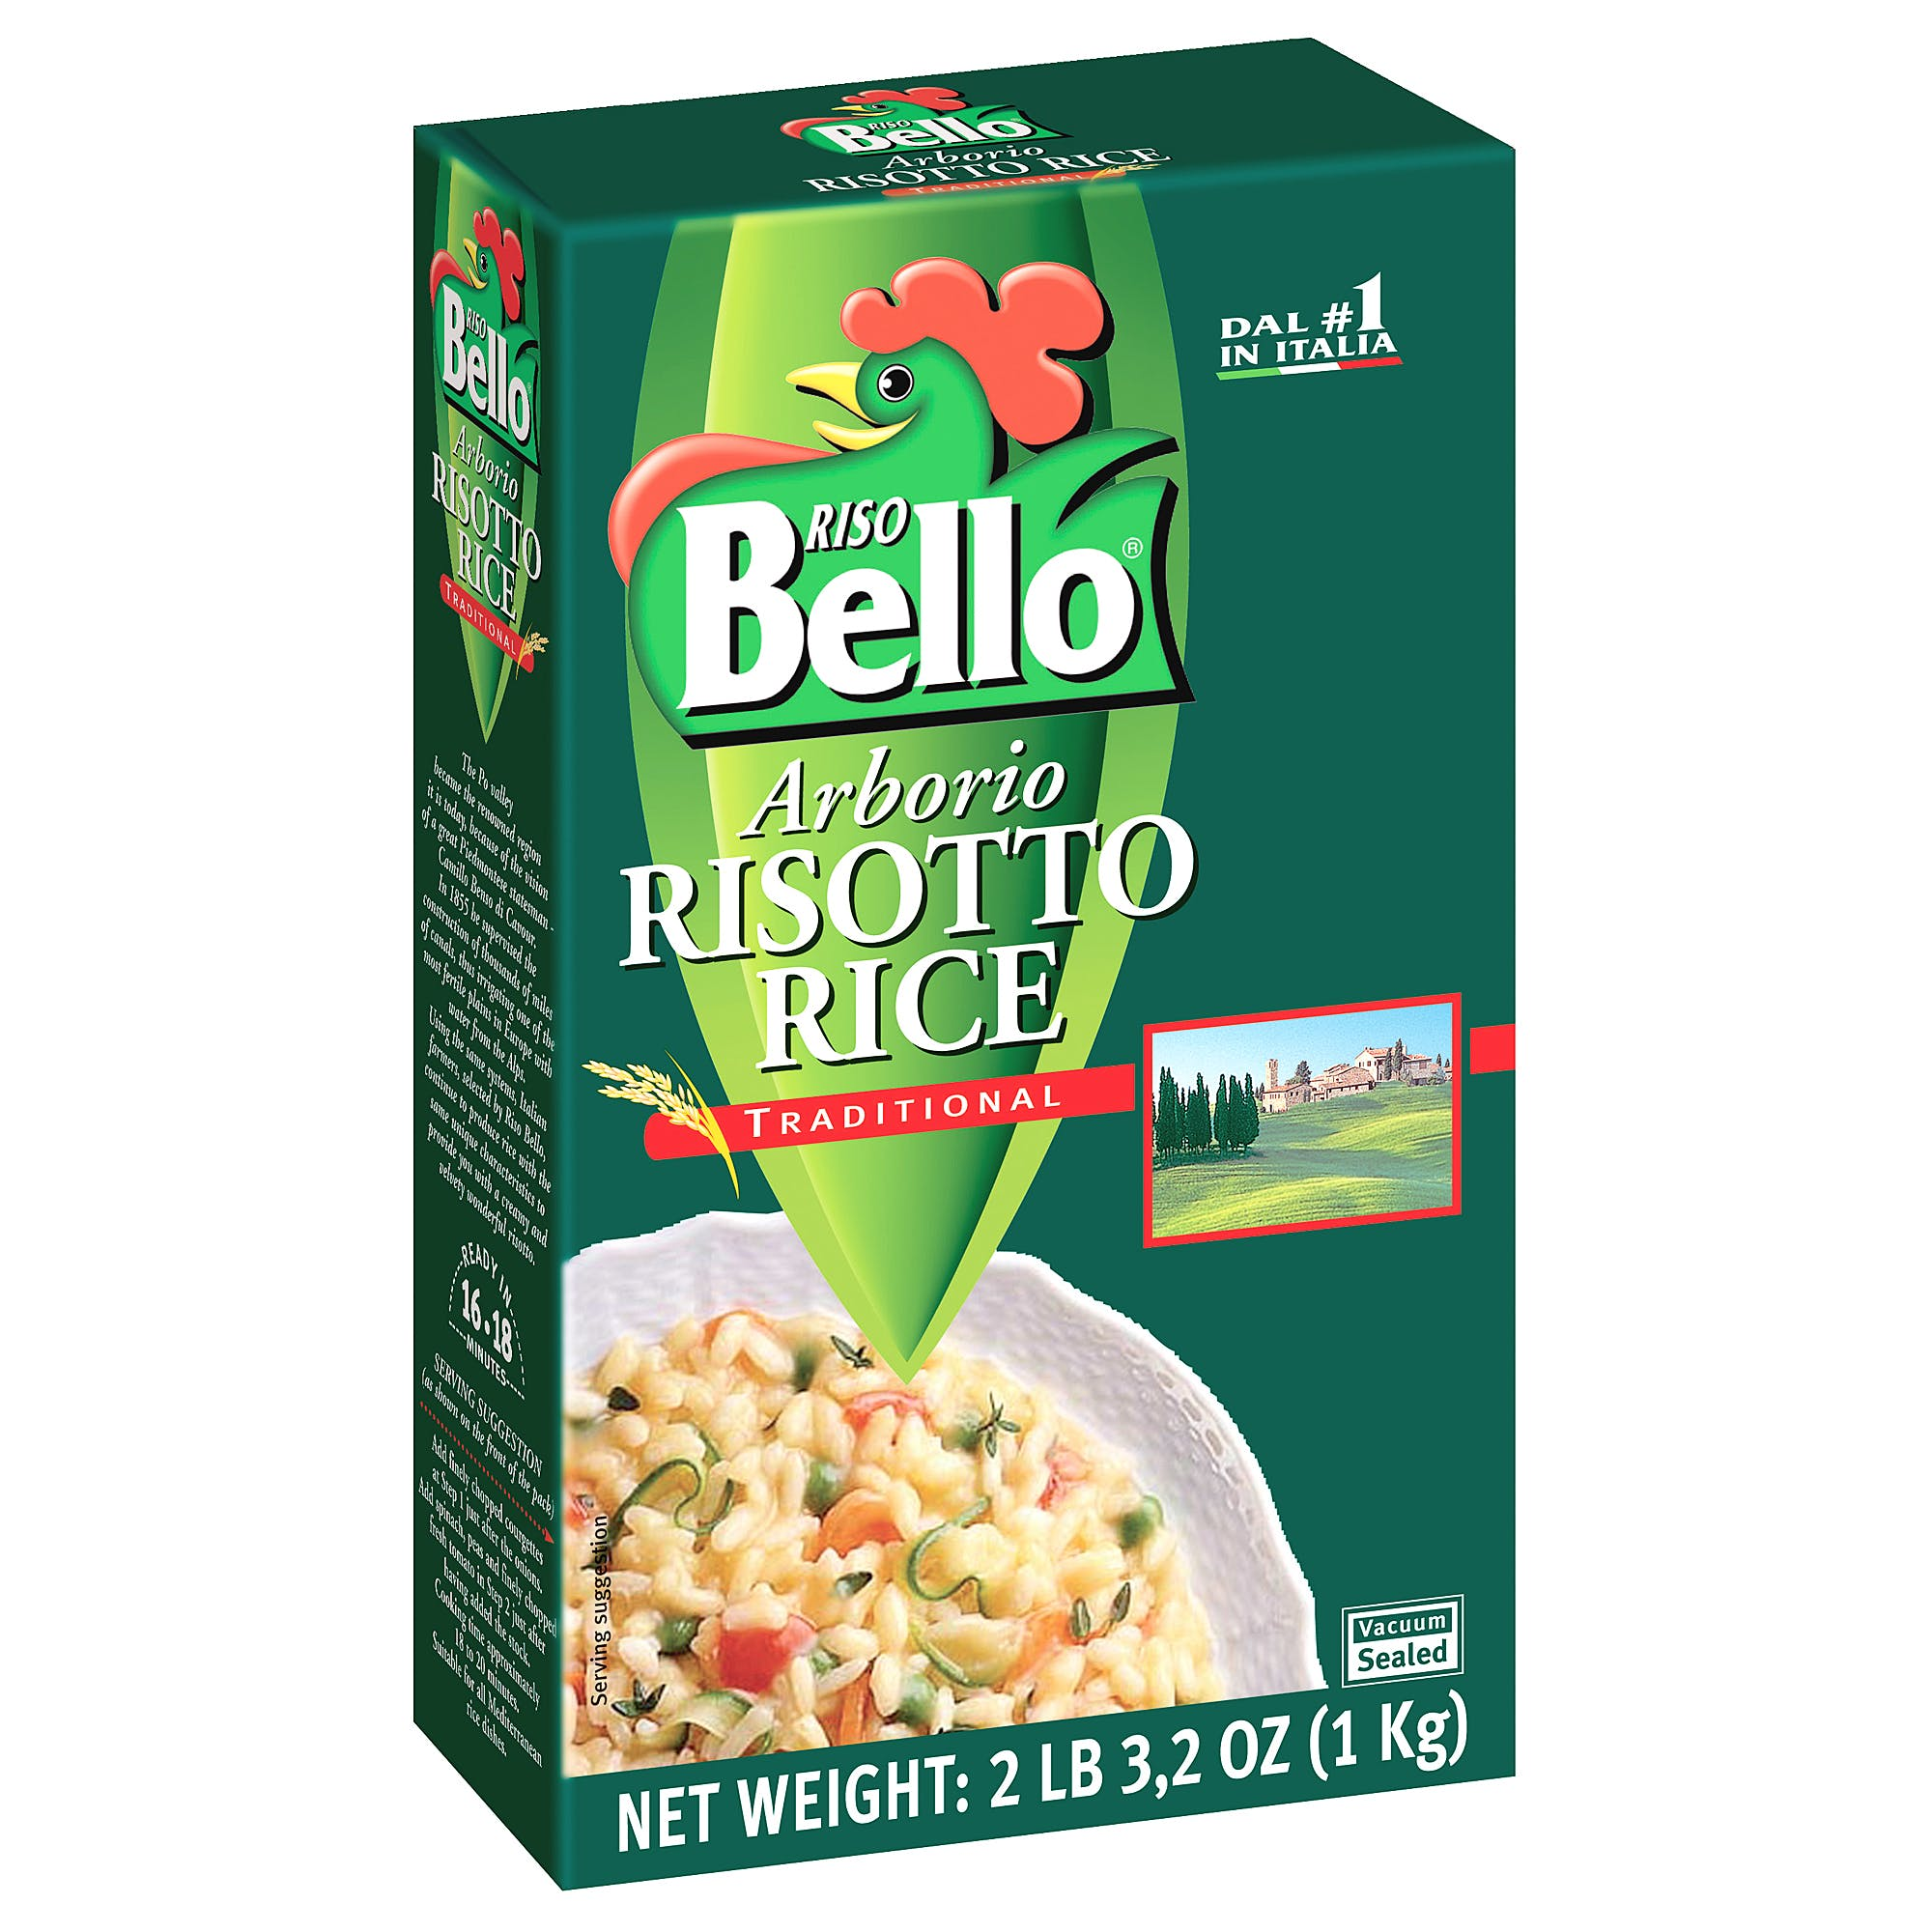 Arborio Risotto Rice Large Rice sold by M5 Corporation